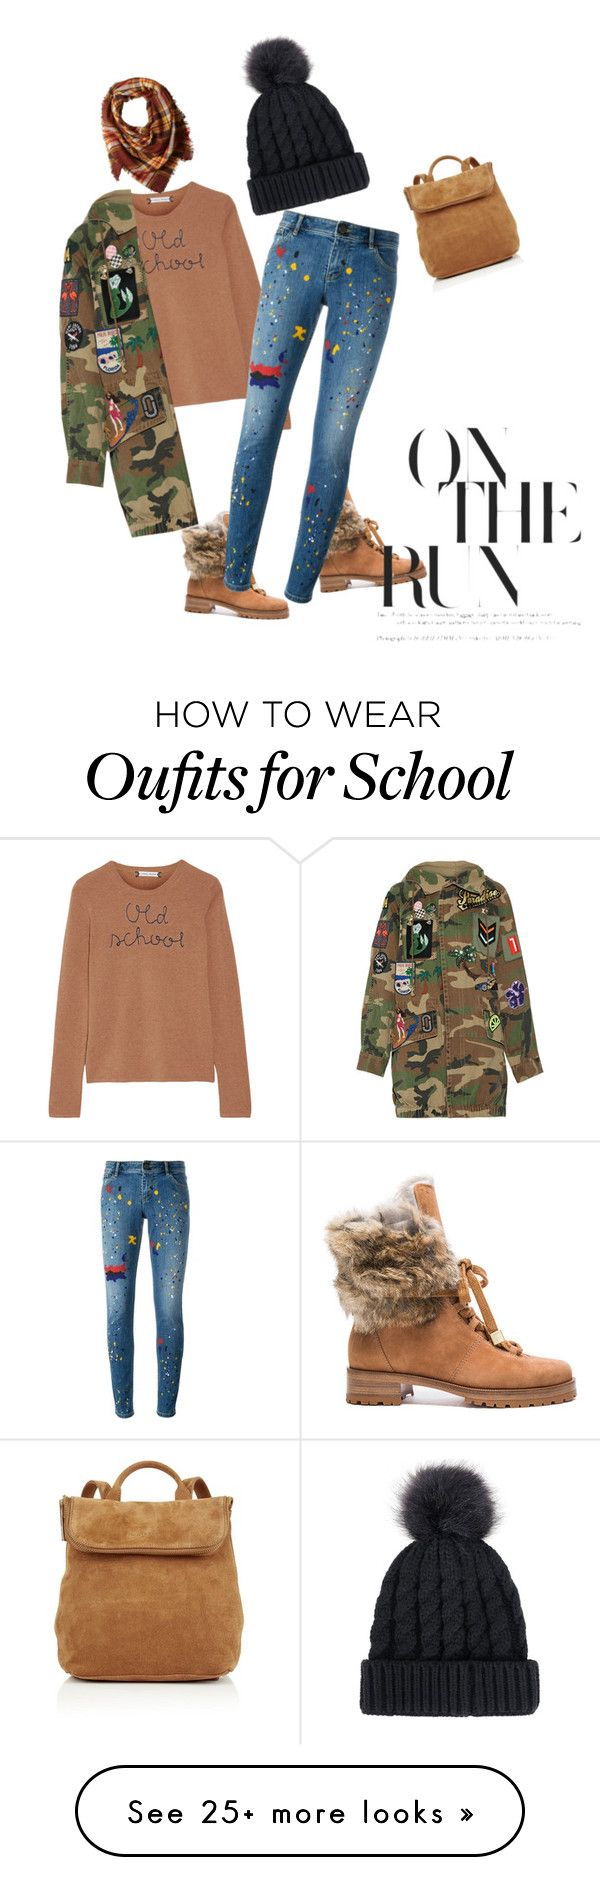 """""""Lady Boots on the ground"""" by zaynabi on Polyvore featuring Lingua Franca, Alexandre Birman, La Fiorentina, Whistles, Alice + Olivia and Marc Jacobs"""